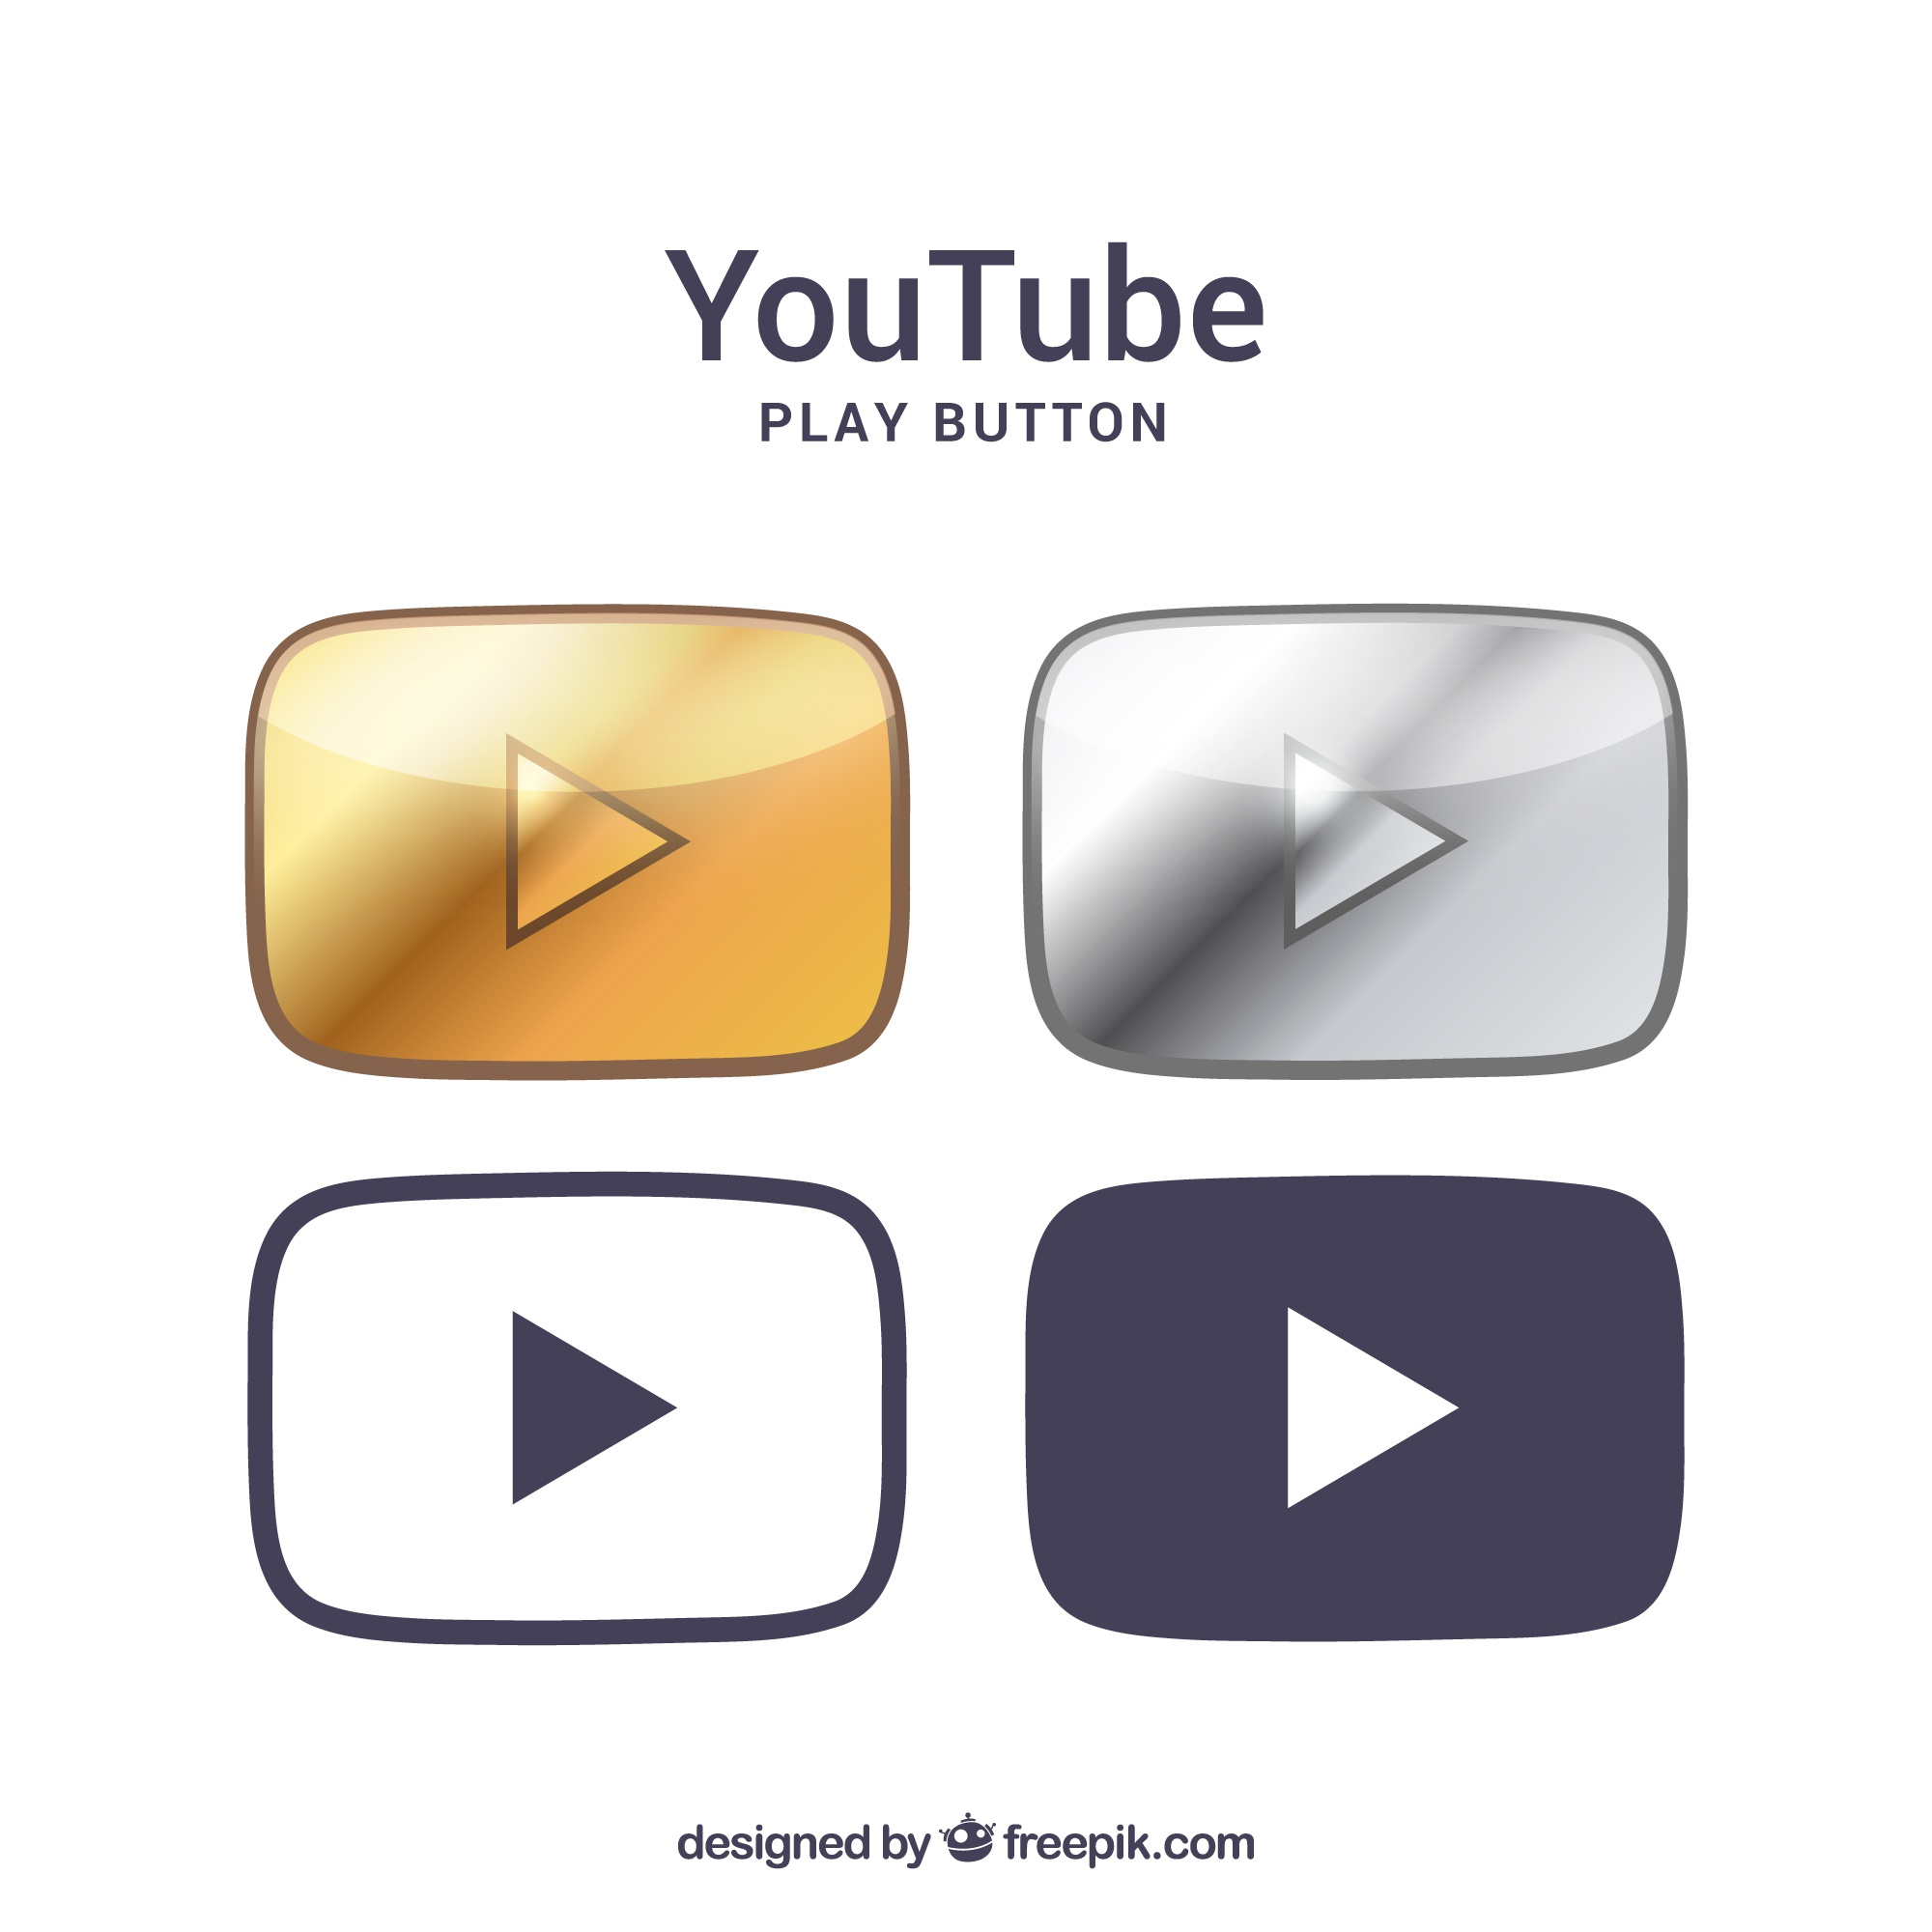 Youtube logo collection with flat design